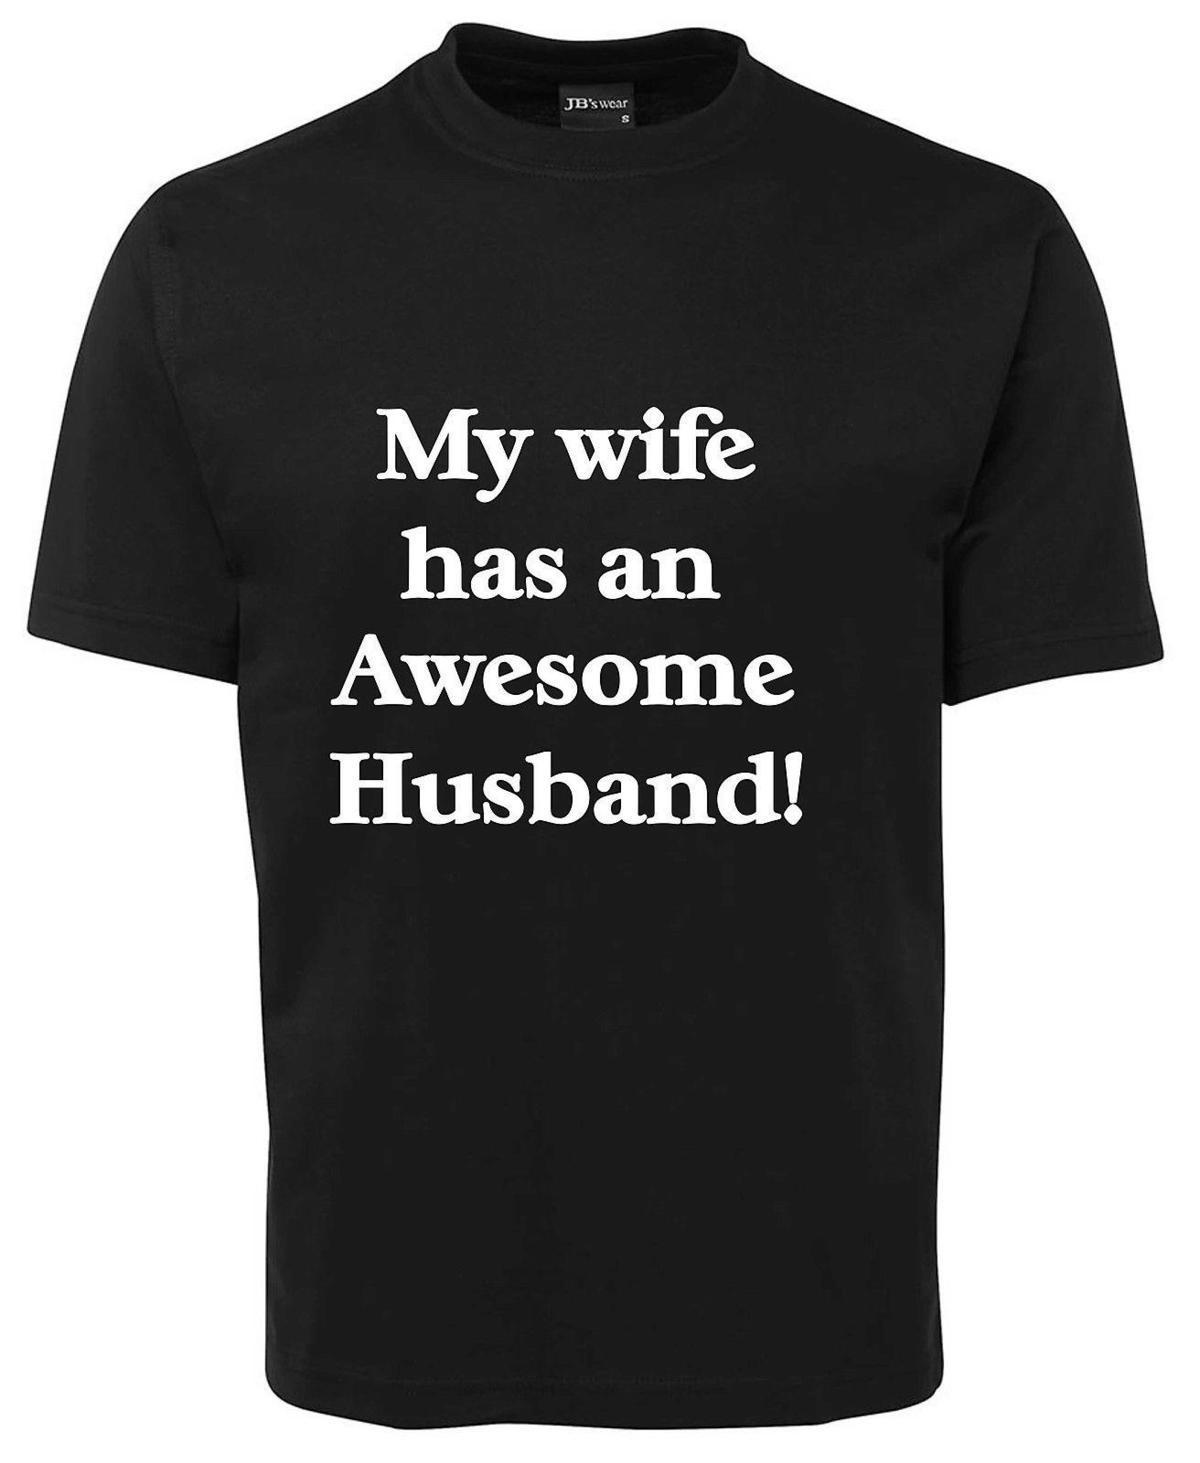 My WIFE has an AWESOME HUSBAND T-Shirts Tees (0274M)